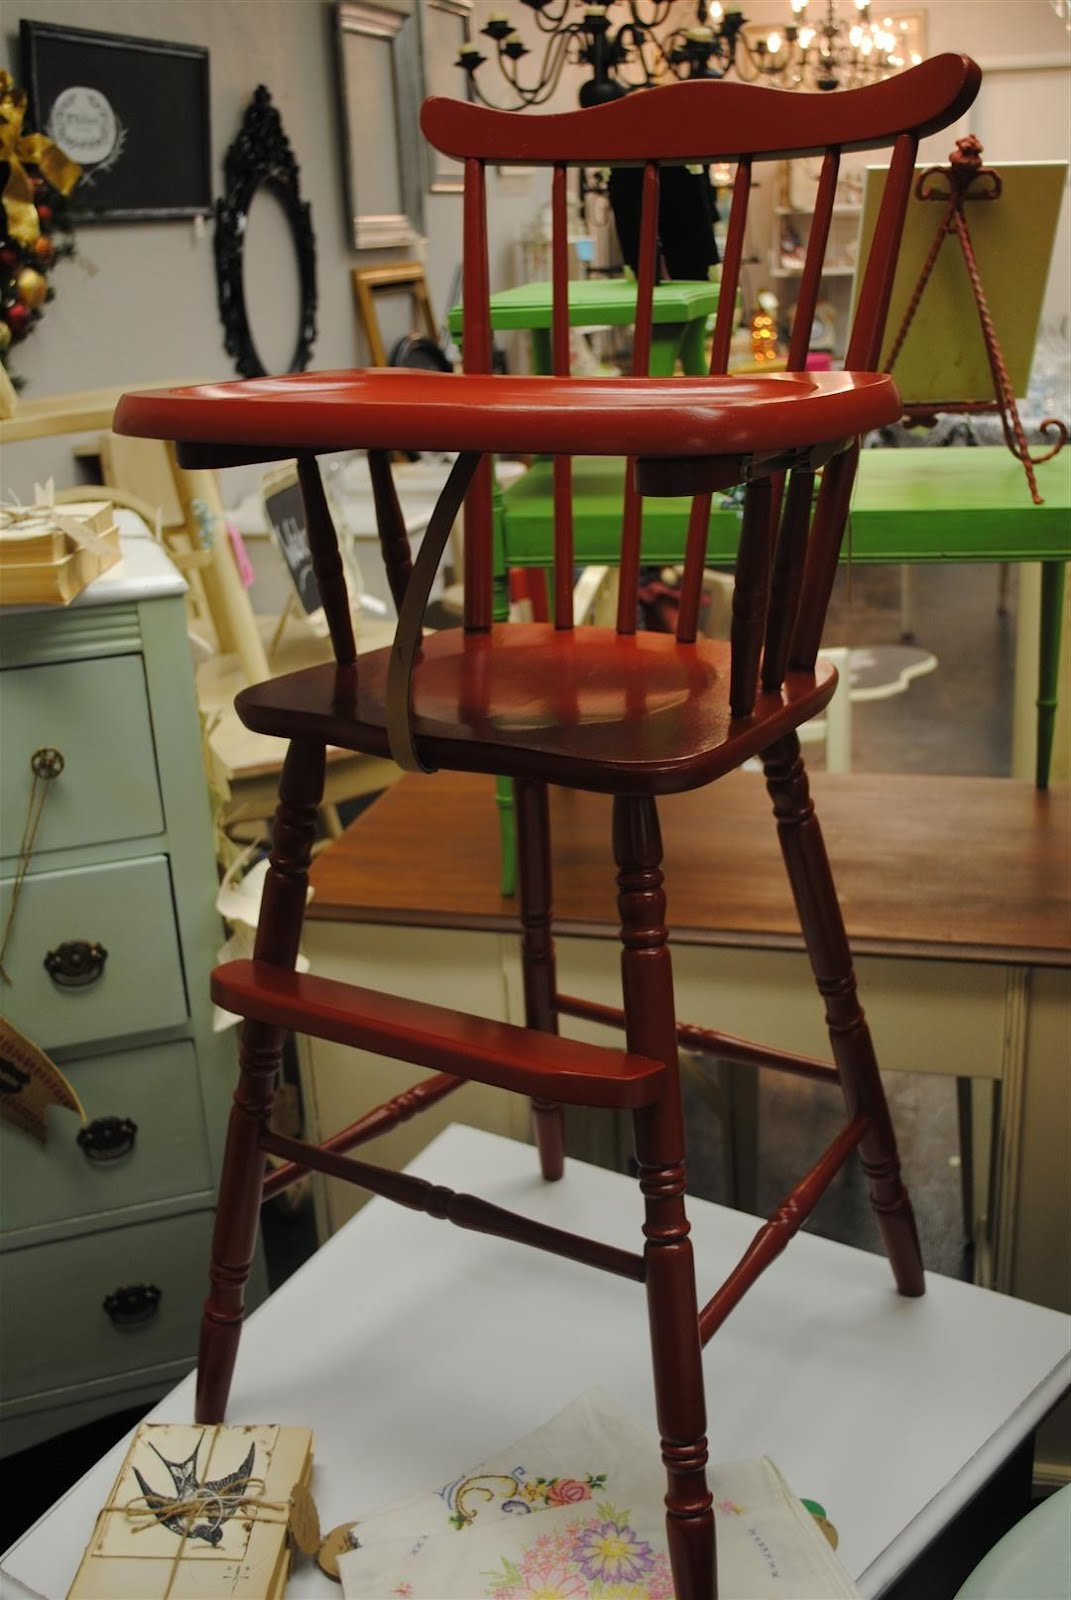 Painted wood high chair - Monday January 23 2012